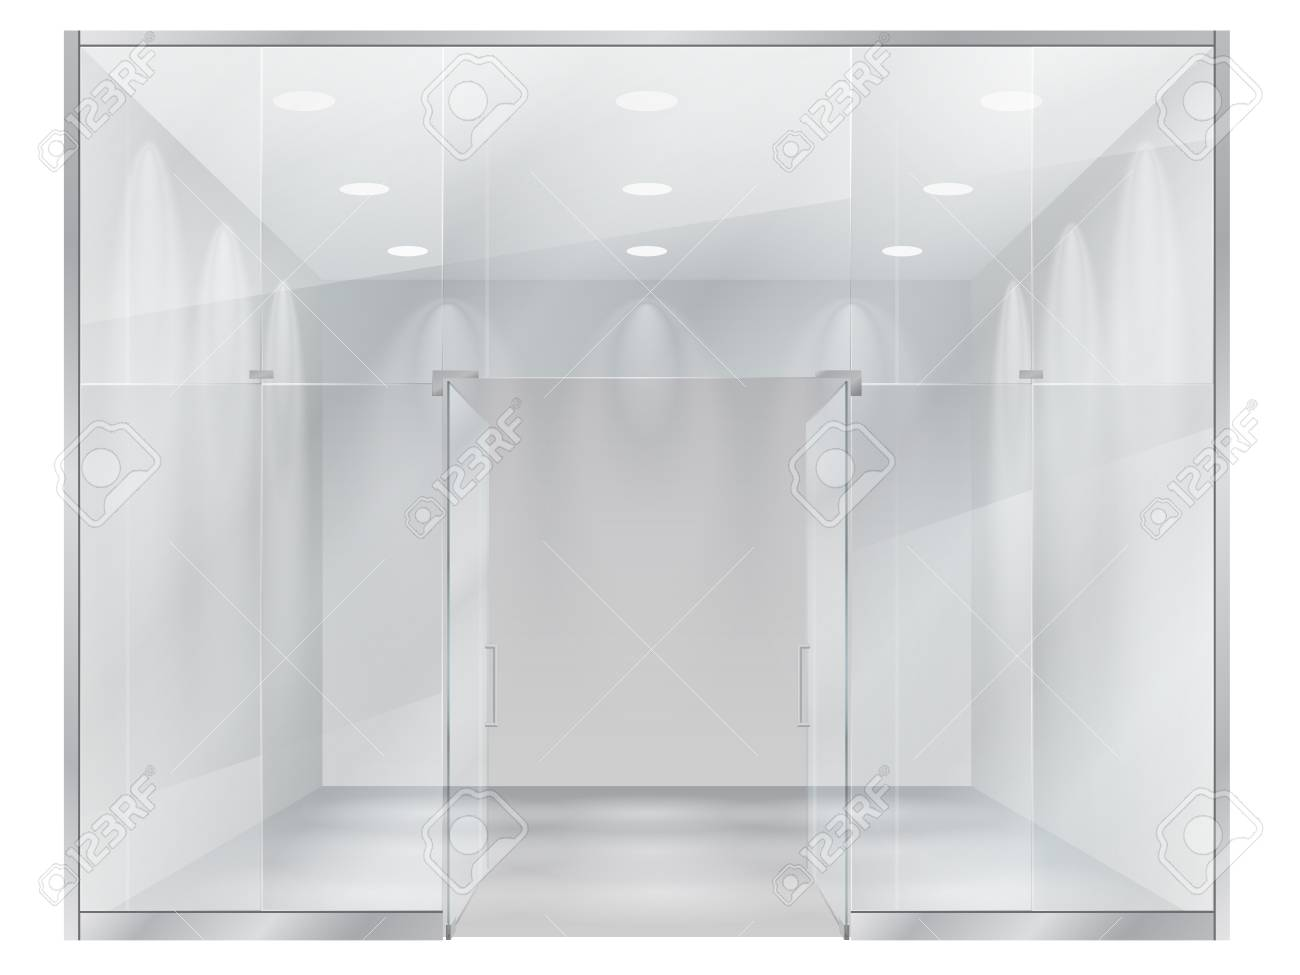 Small Exhibition Stand Vector : Glass showcase of boutique a view of the interior of a small